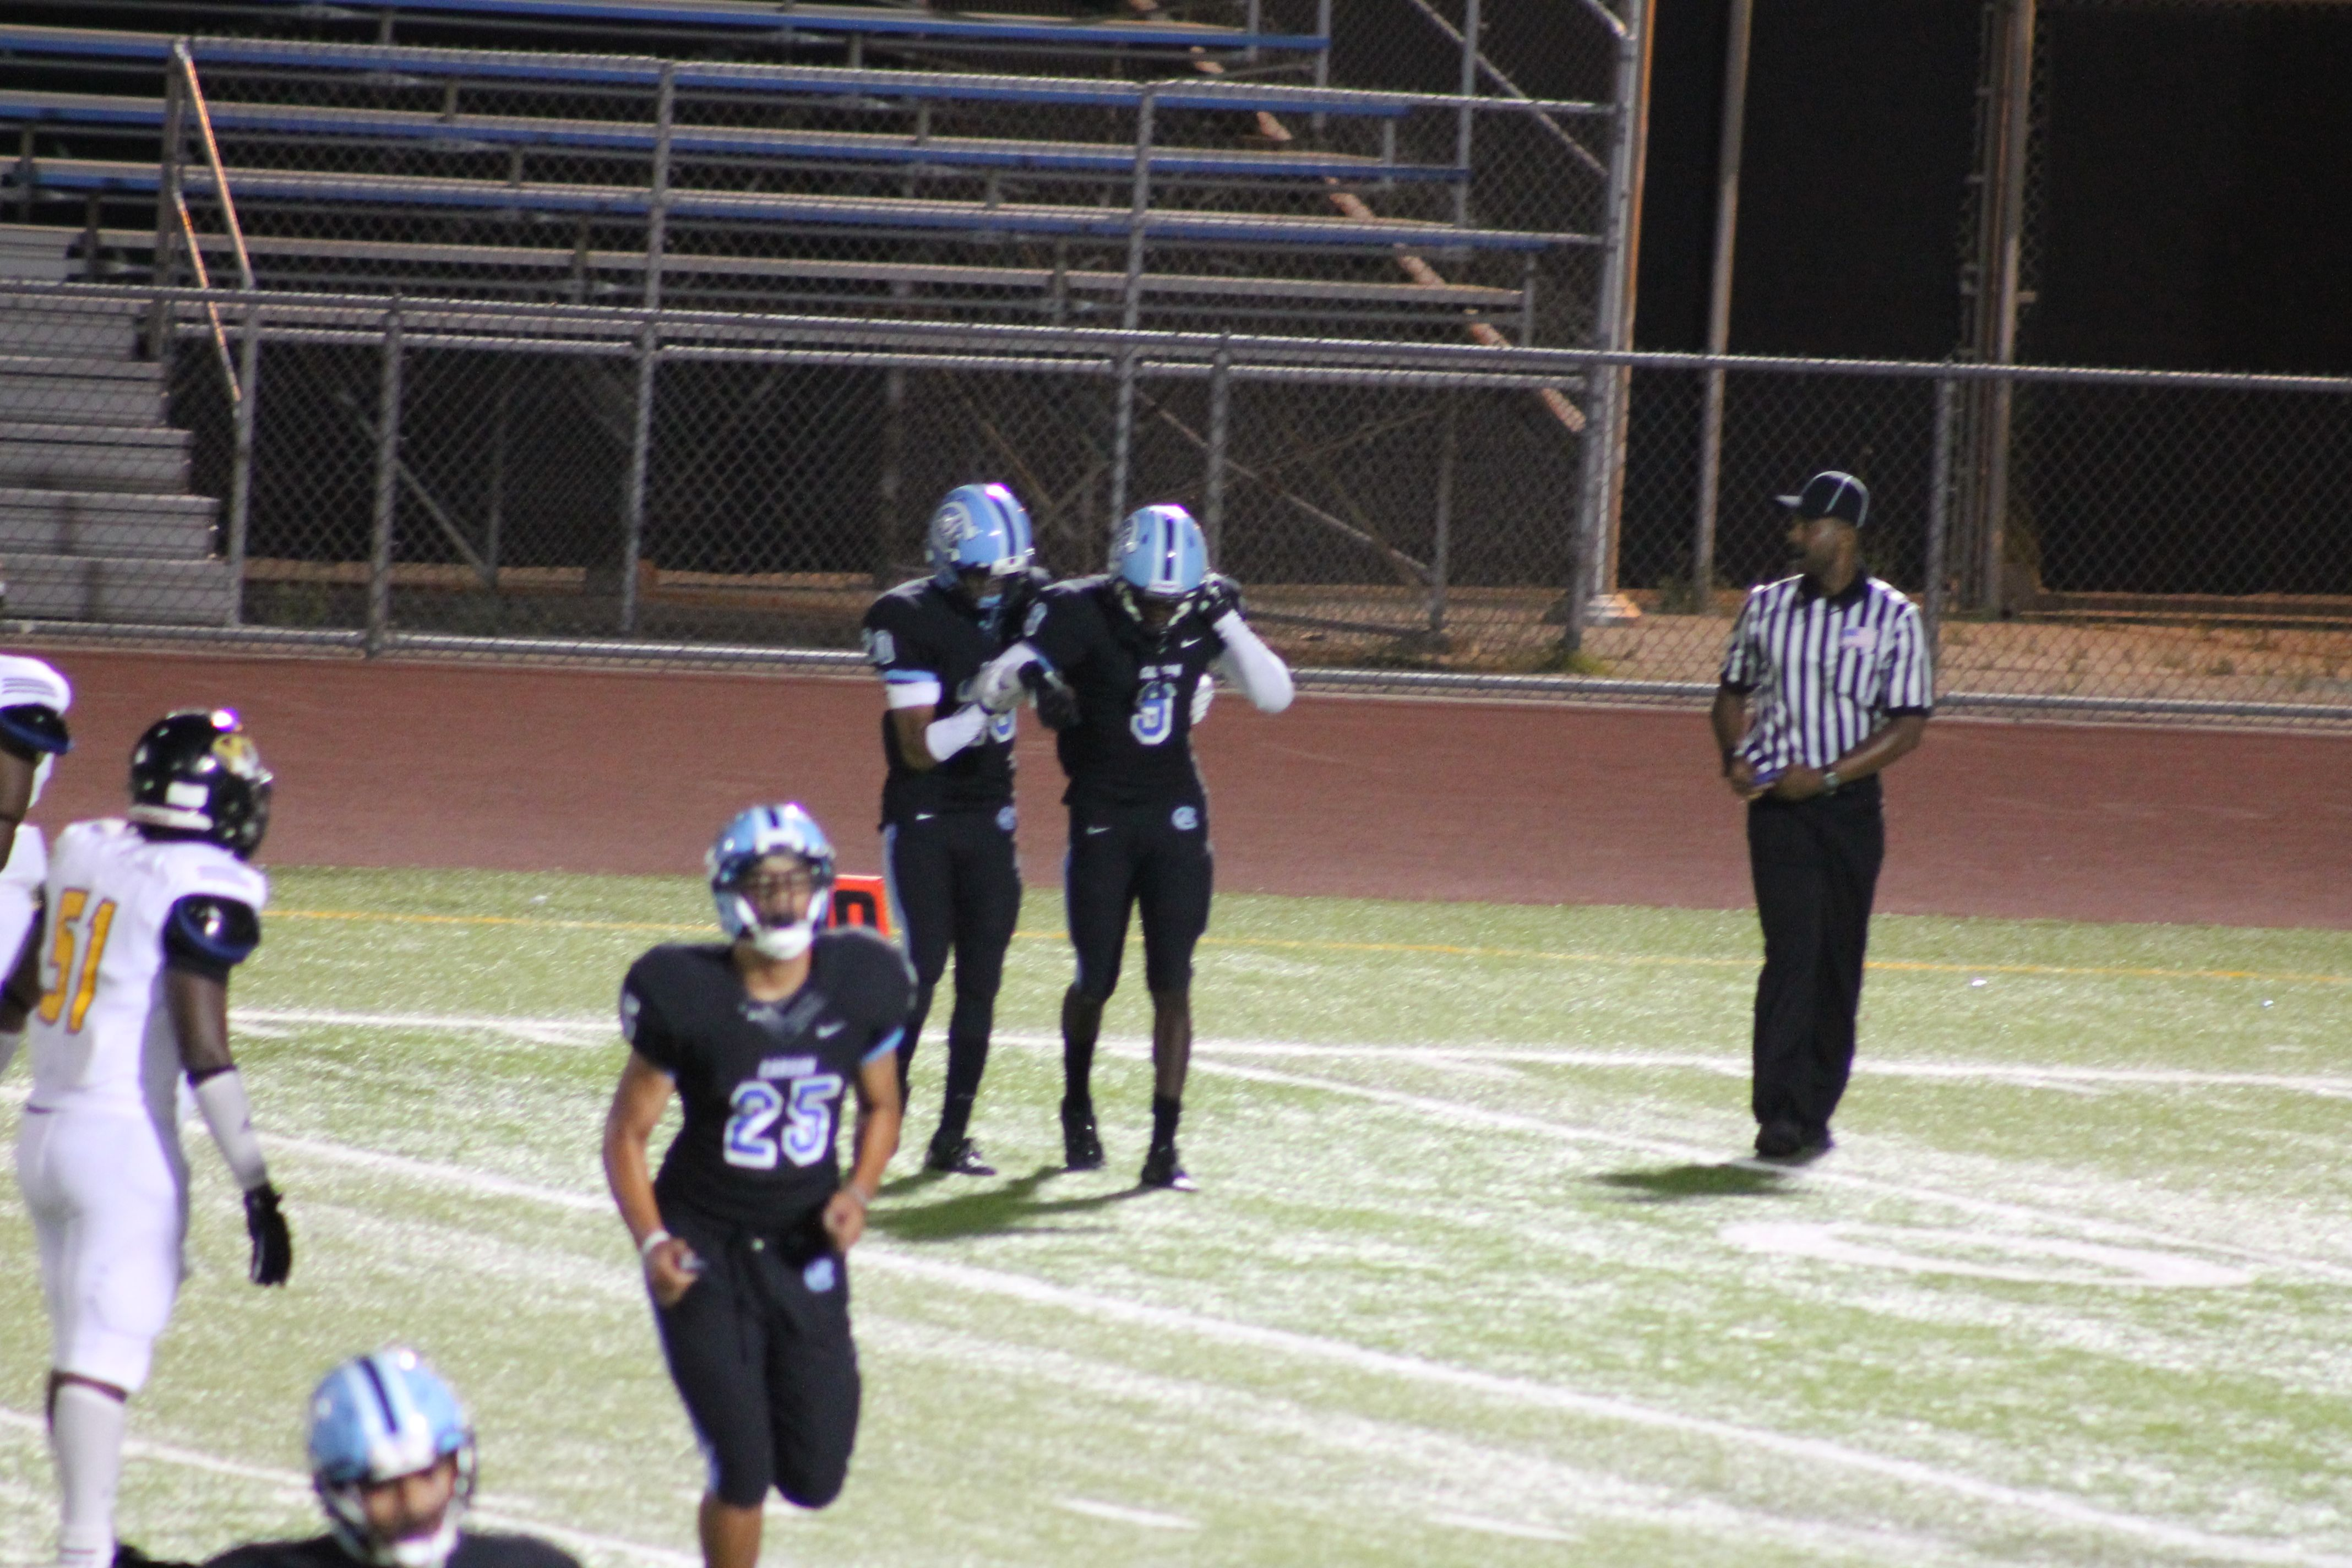 A Little shaken up on the play